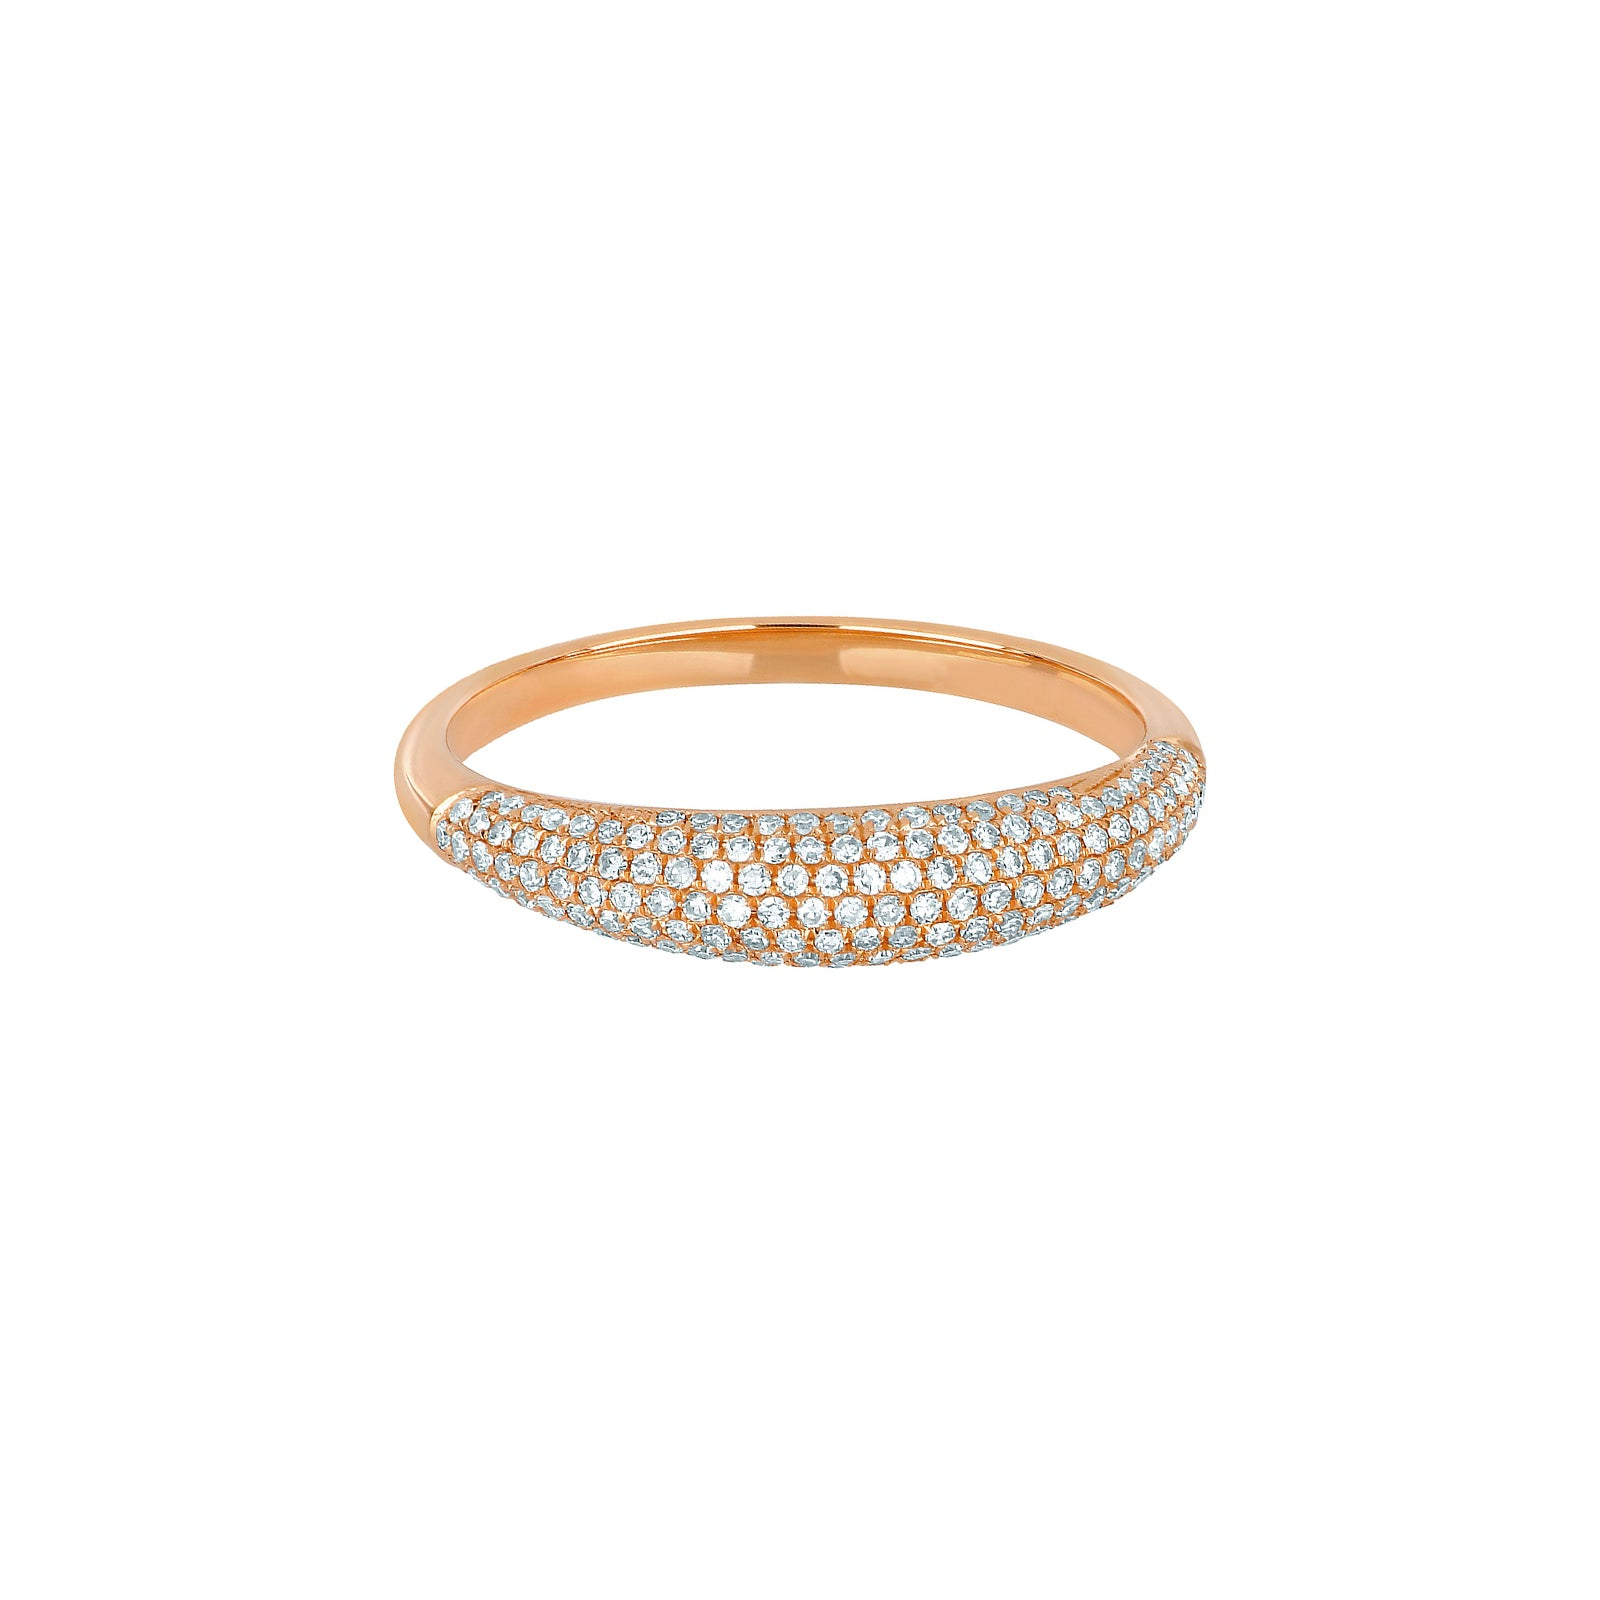 EF Collection Dome Diamond Ring - Rose Gold - Rings - Broken English Jewelry